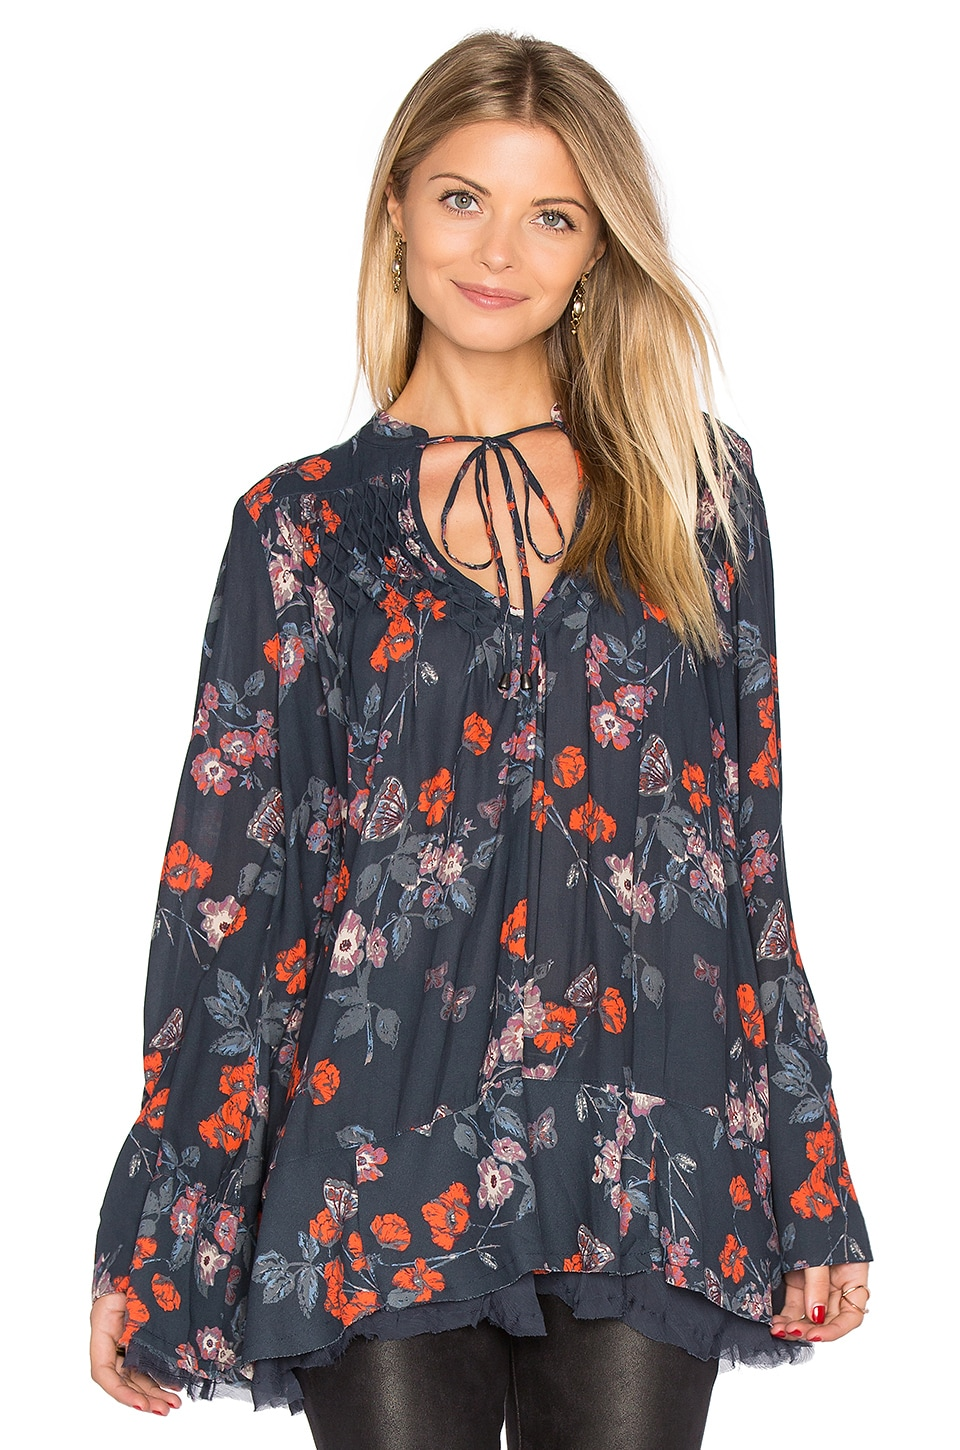 Free People Pebble Crepe So Fine Smoked Tunic Top in Navy